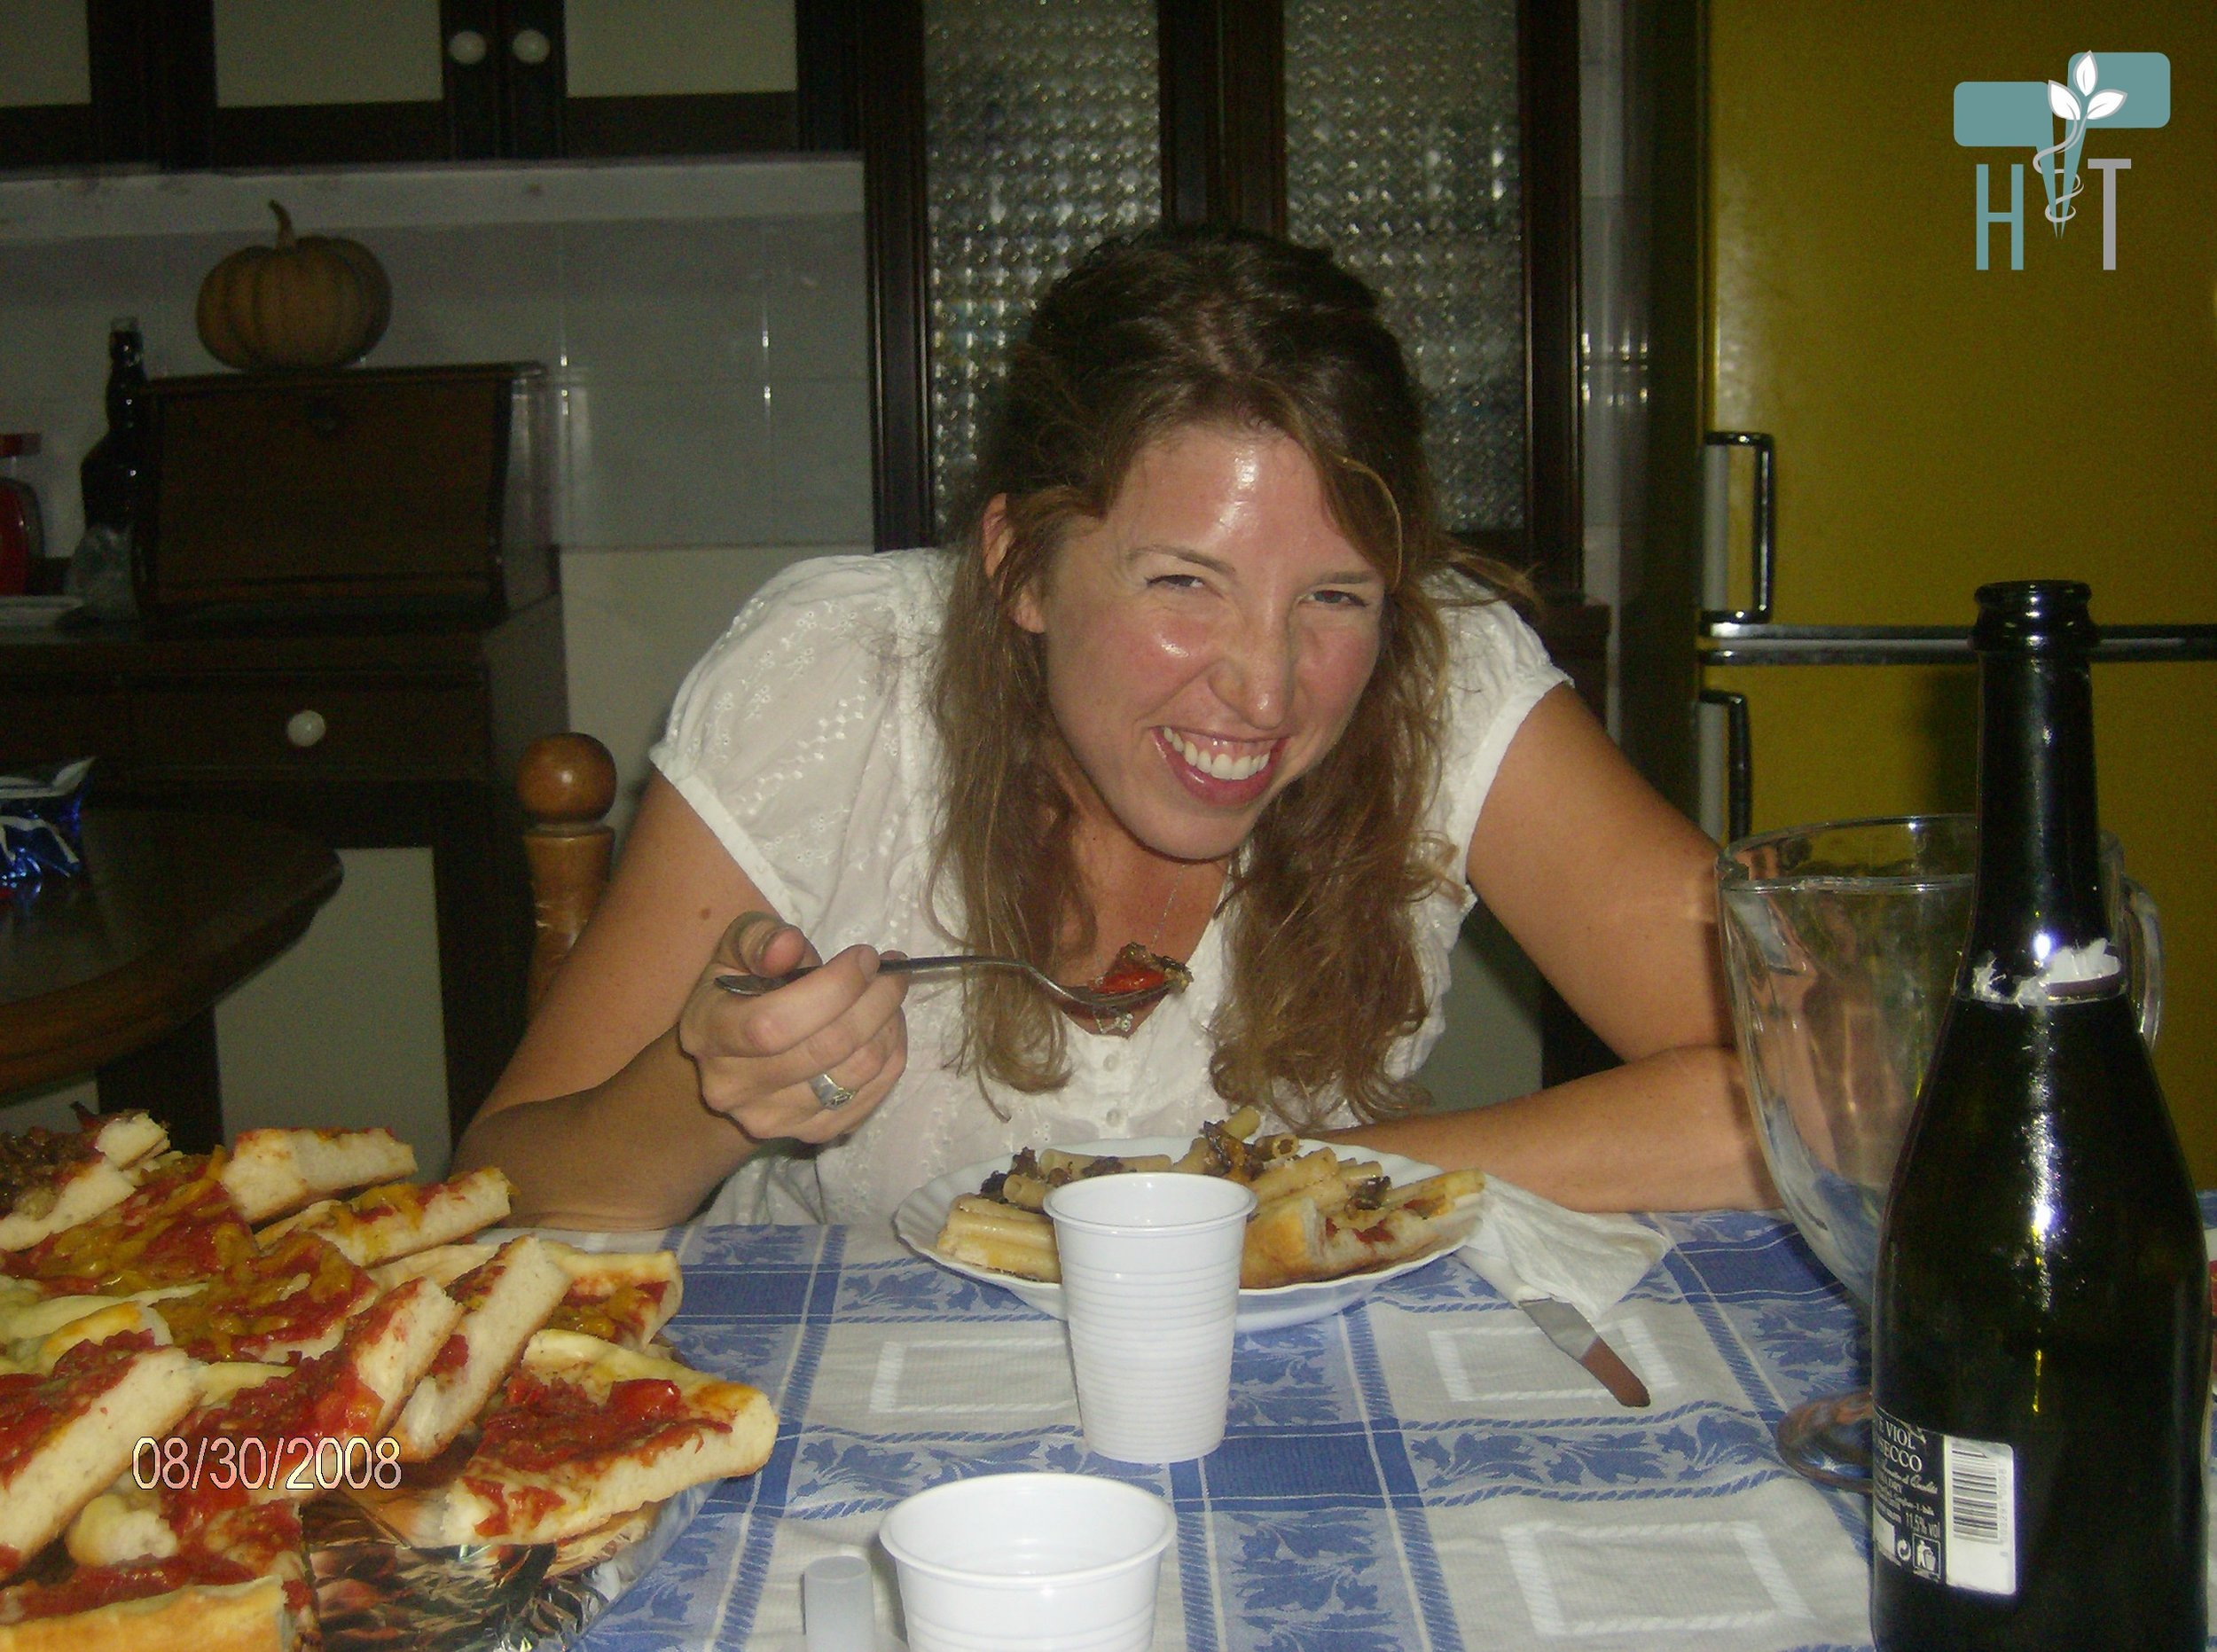 Me eating true Italian pizza and wine in my Italian landlord's kitchen.